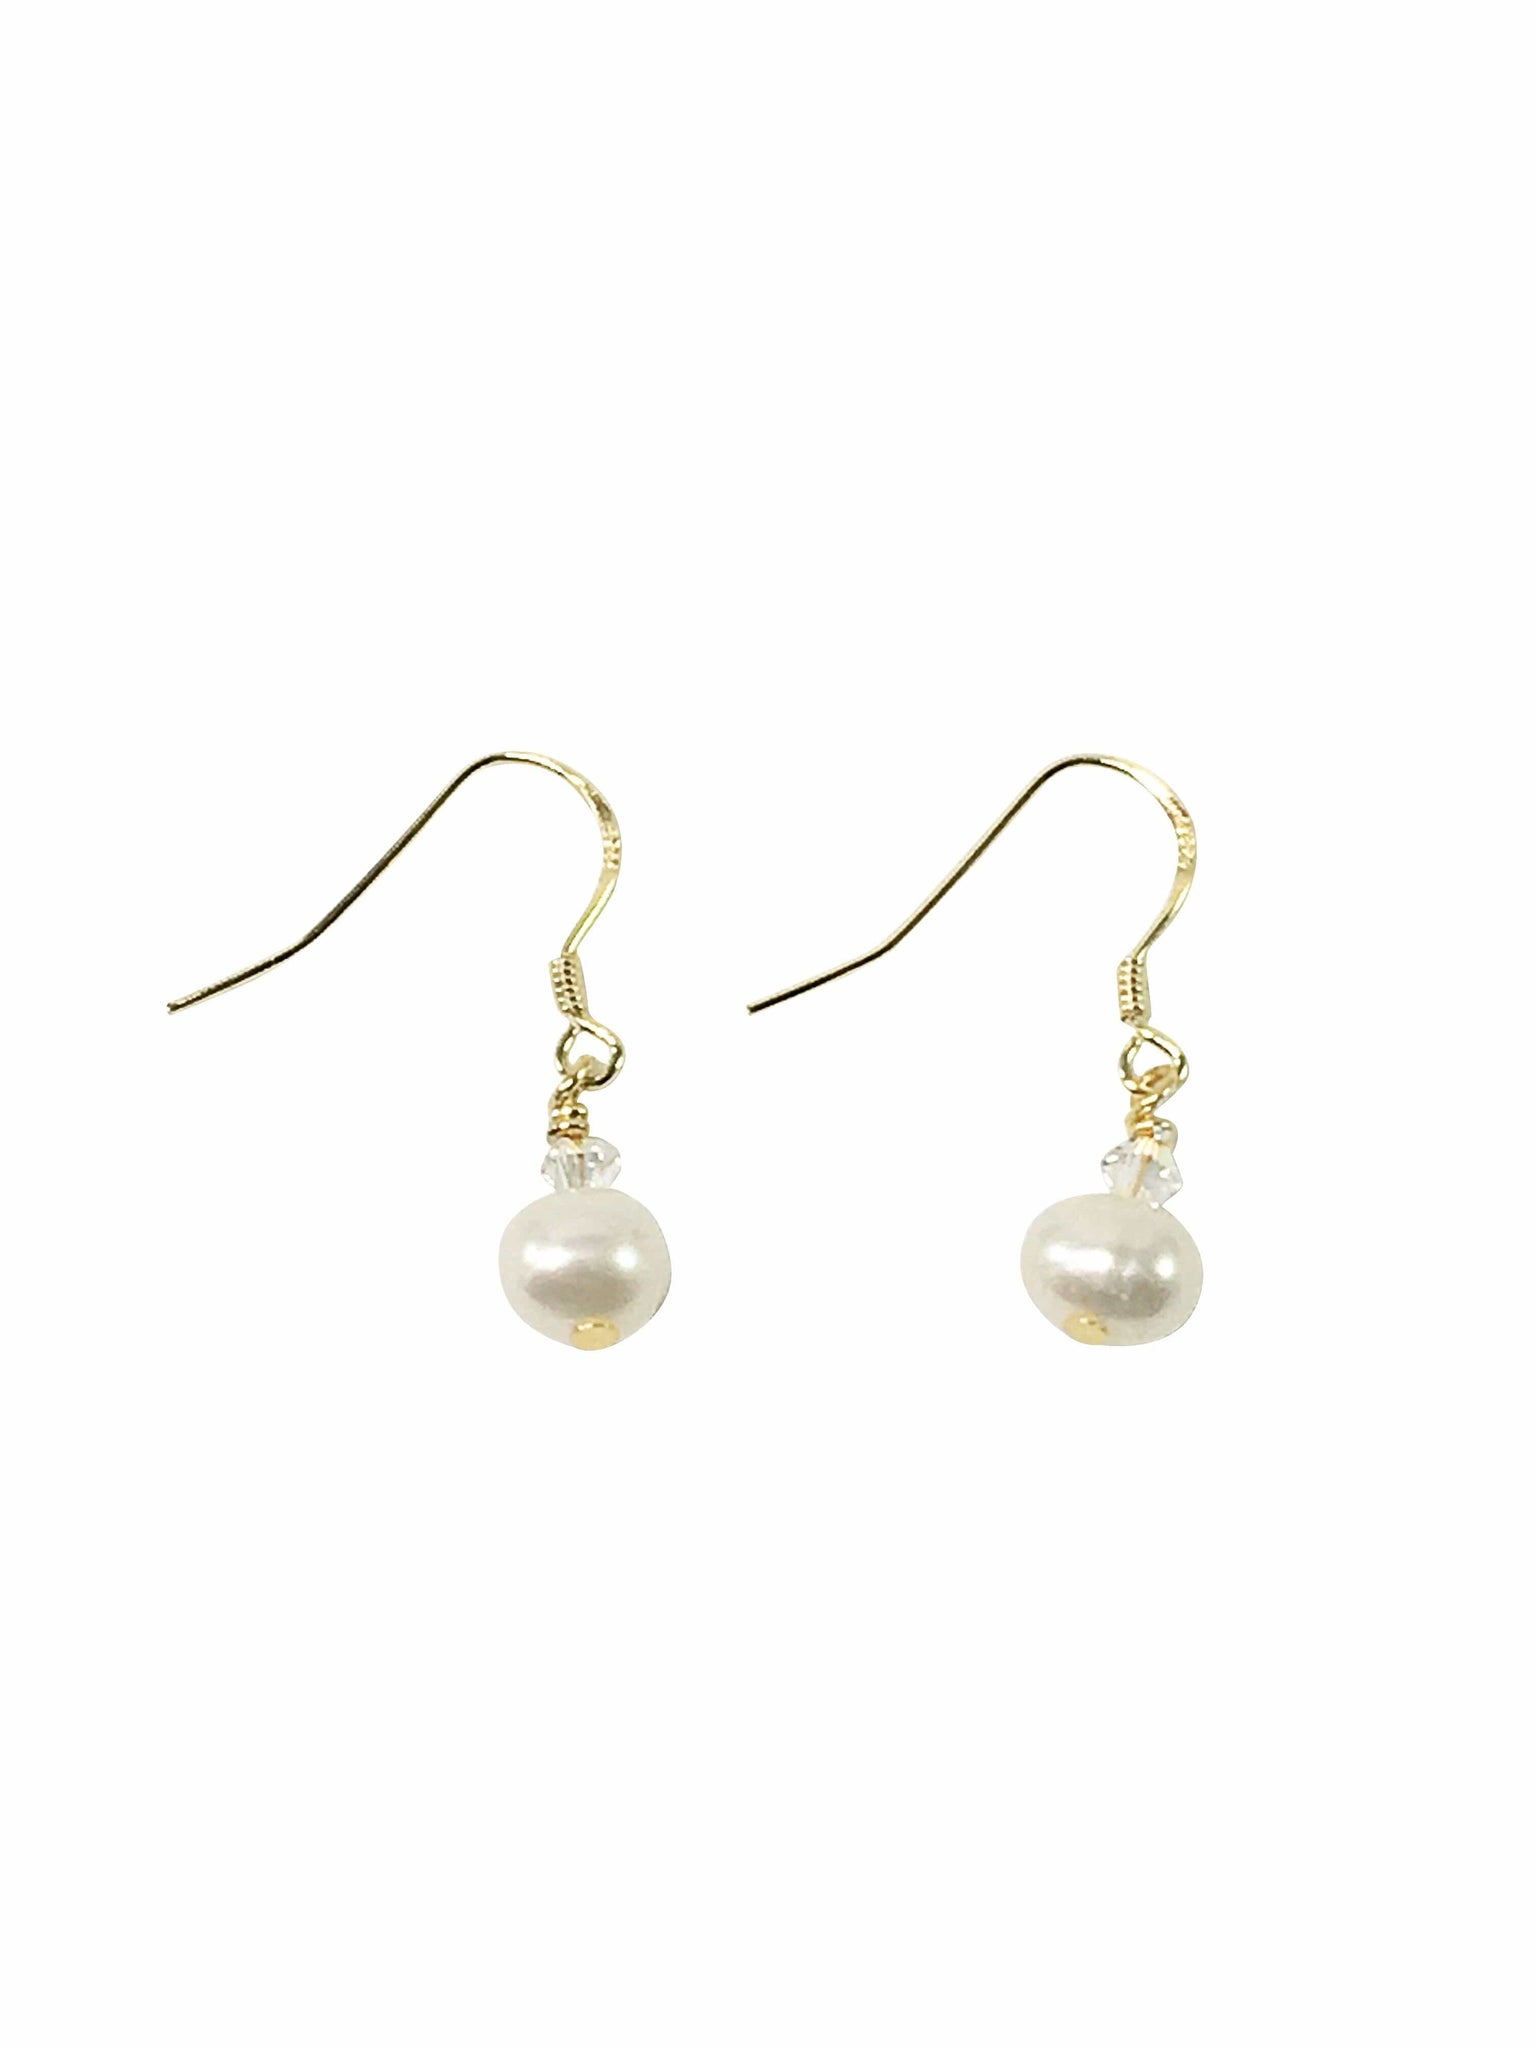 Handmade Sterling Silver Earrings With Freshwater Pearl